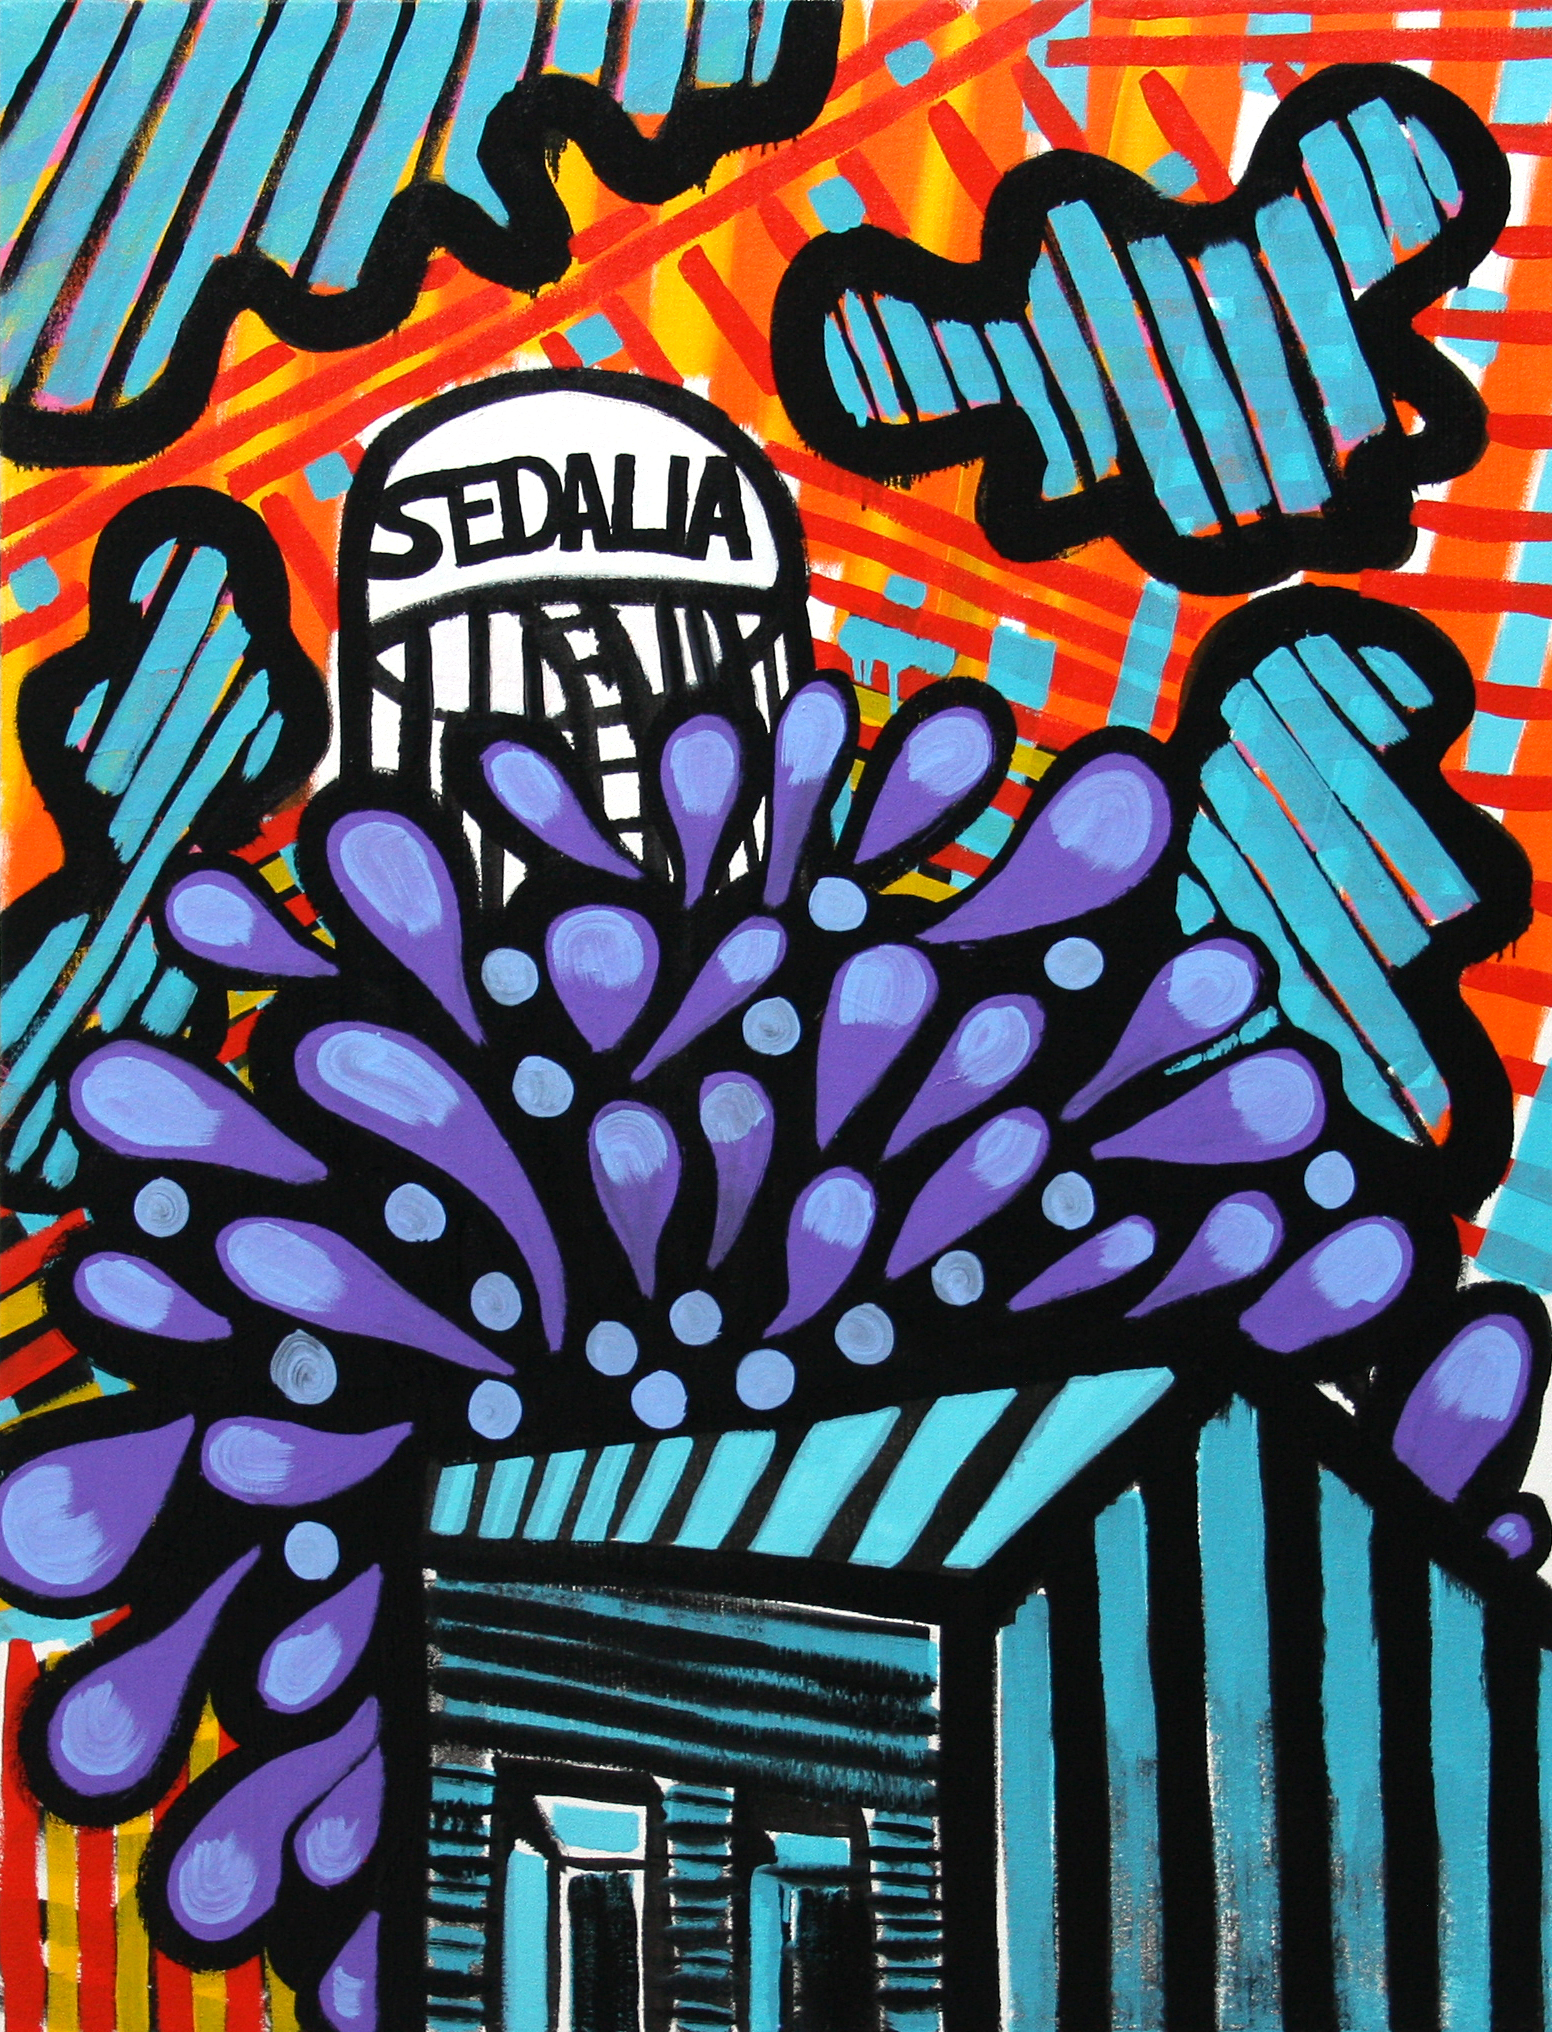 Sedalia painter opening exhibition in St. Louis next week